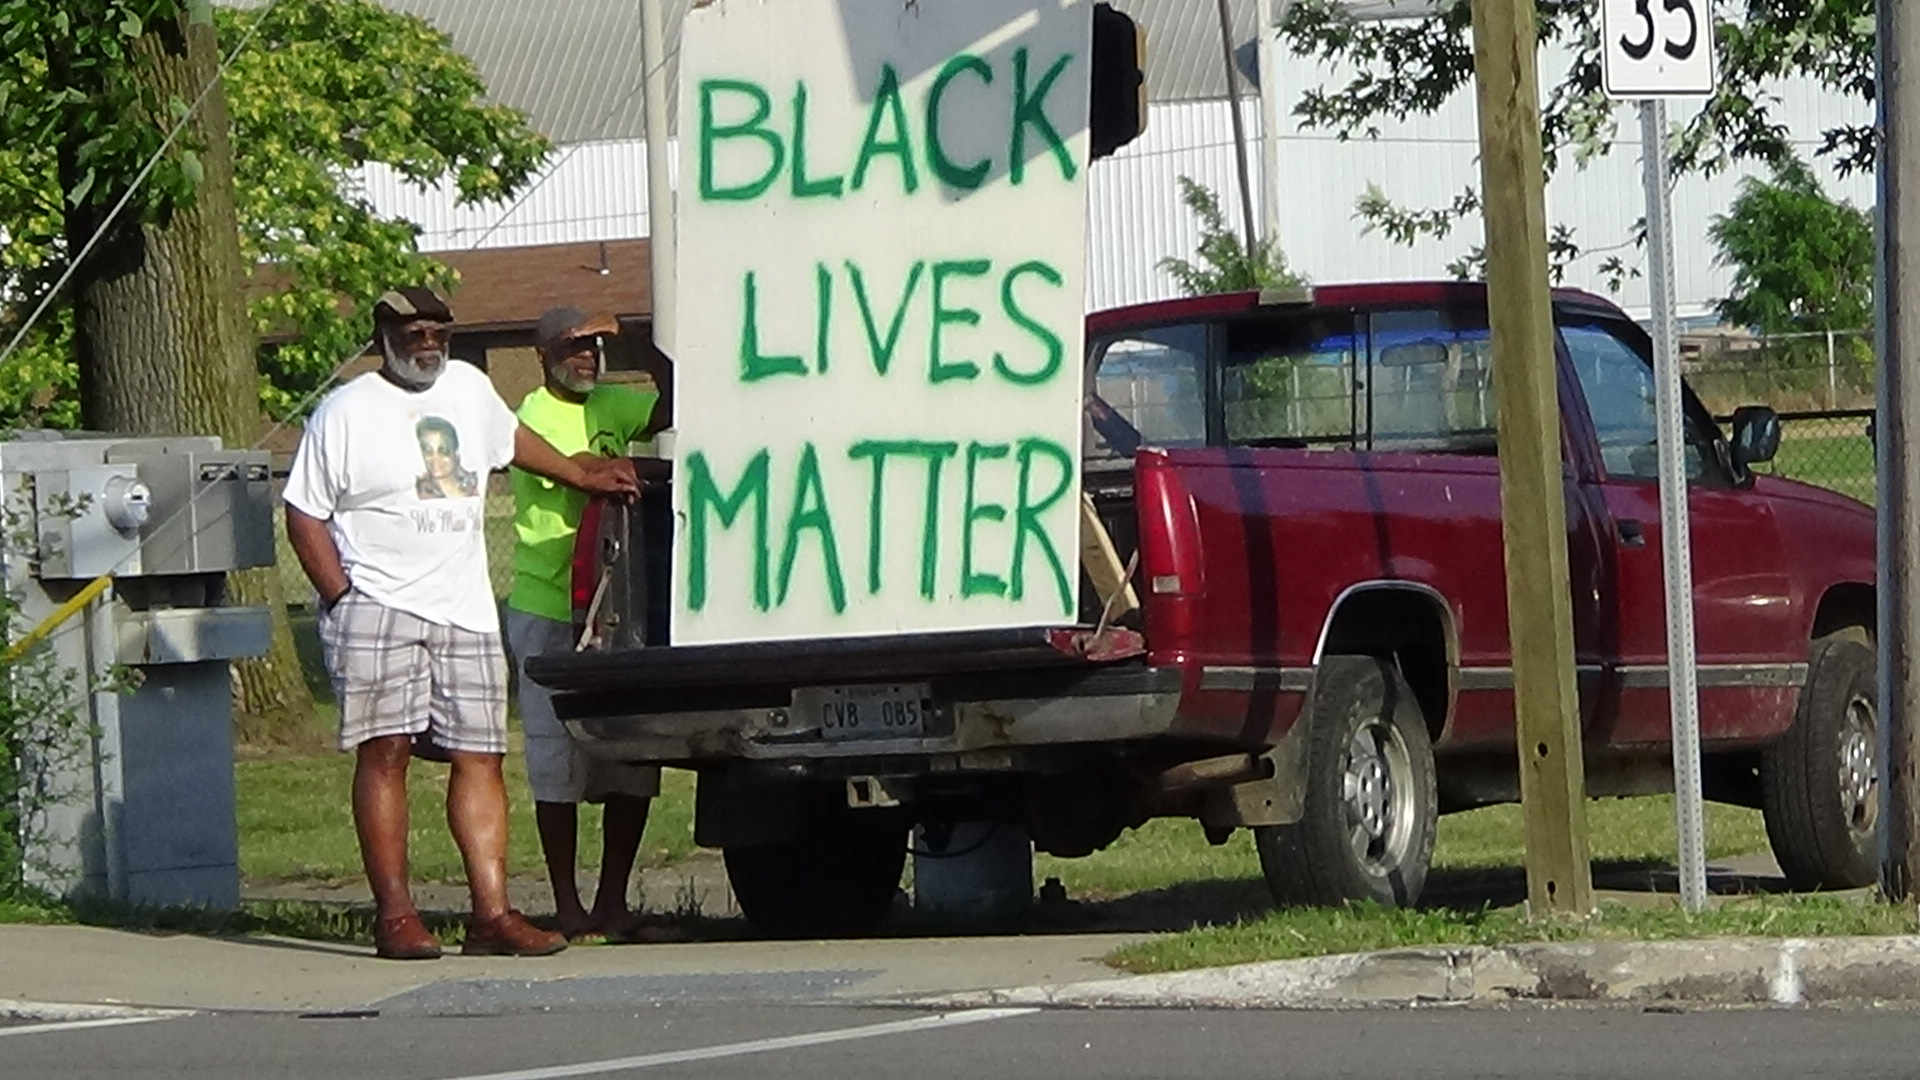 """Erie, PA (July 22, 2016) Men standing outside of their truck with a """"Black Lives Matter"""" sign during a peace rally on the corner of East 12th and Wayne Street in Erie, PA. (Photo Credit: Lauren Benzo )"""